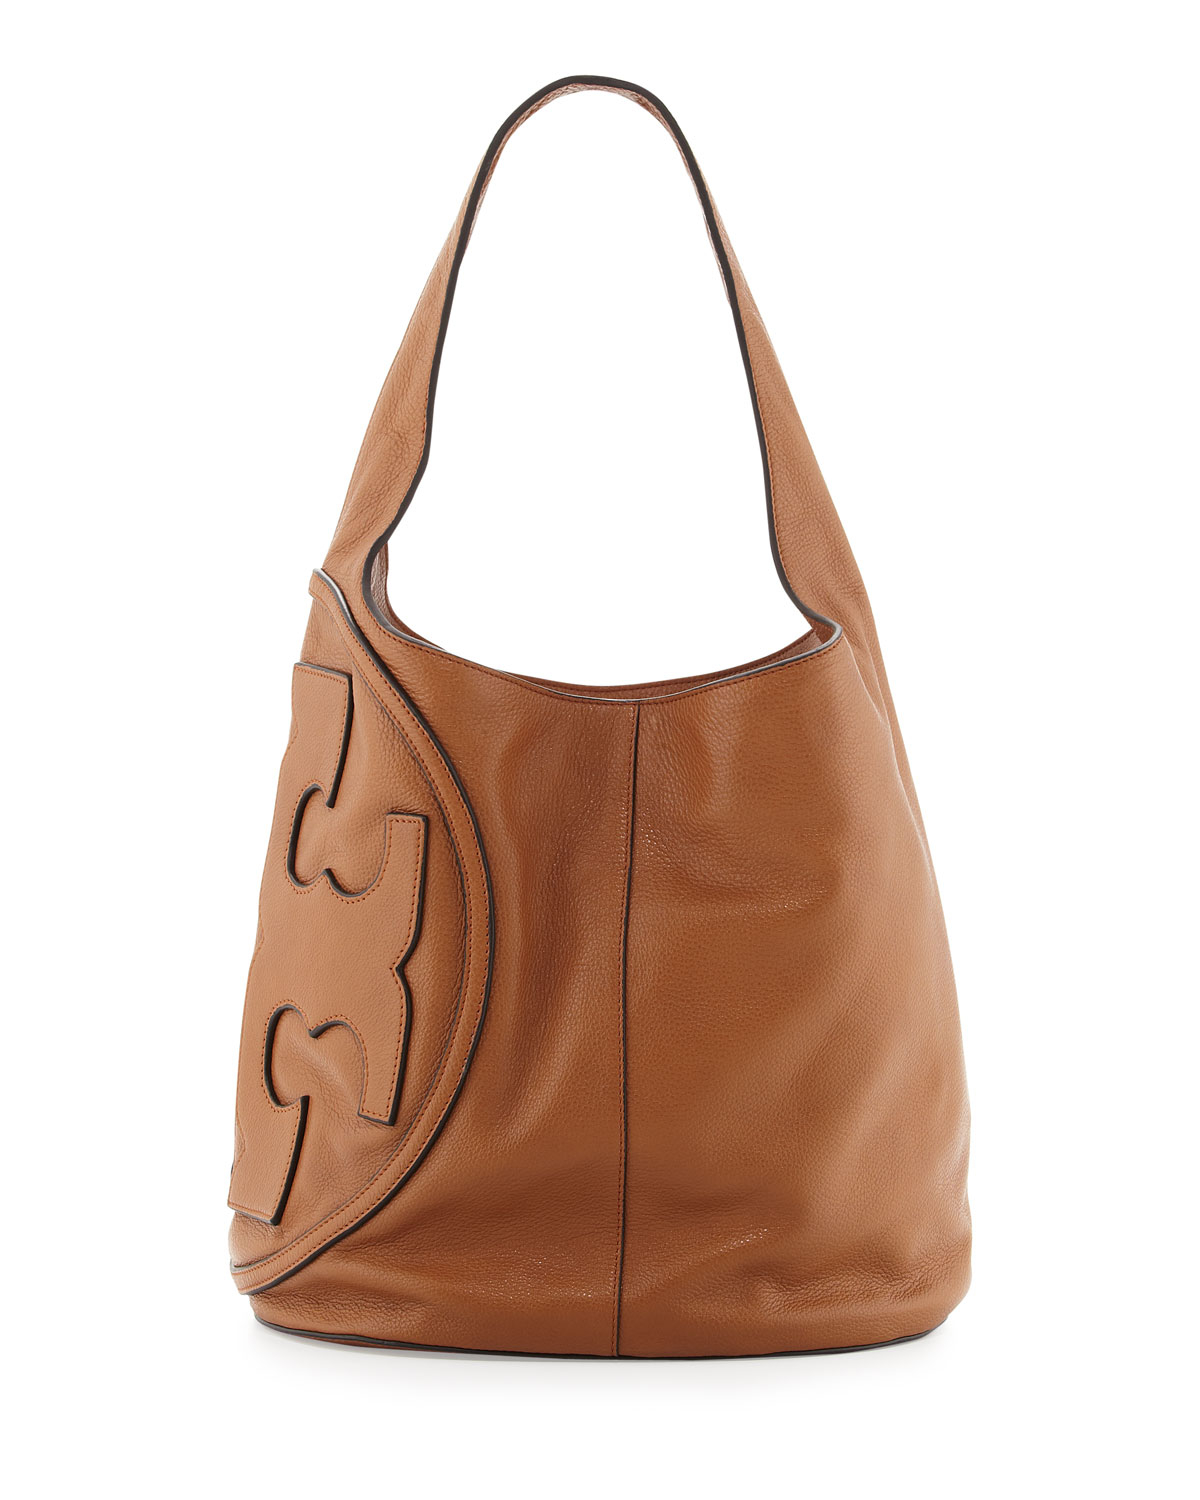 Tory Burch All T Pebbled Leather Hobo In Brown Bark Lyst